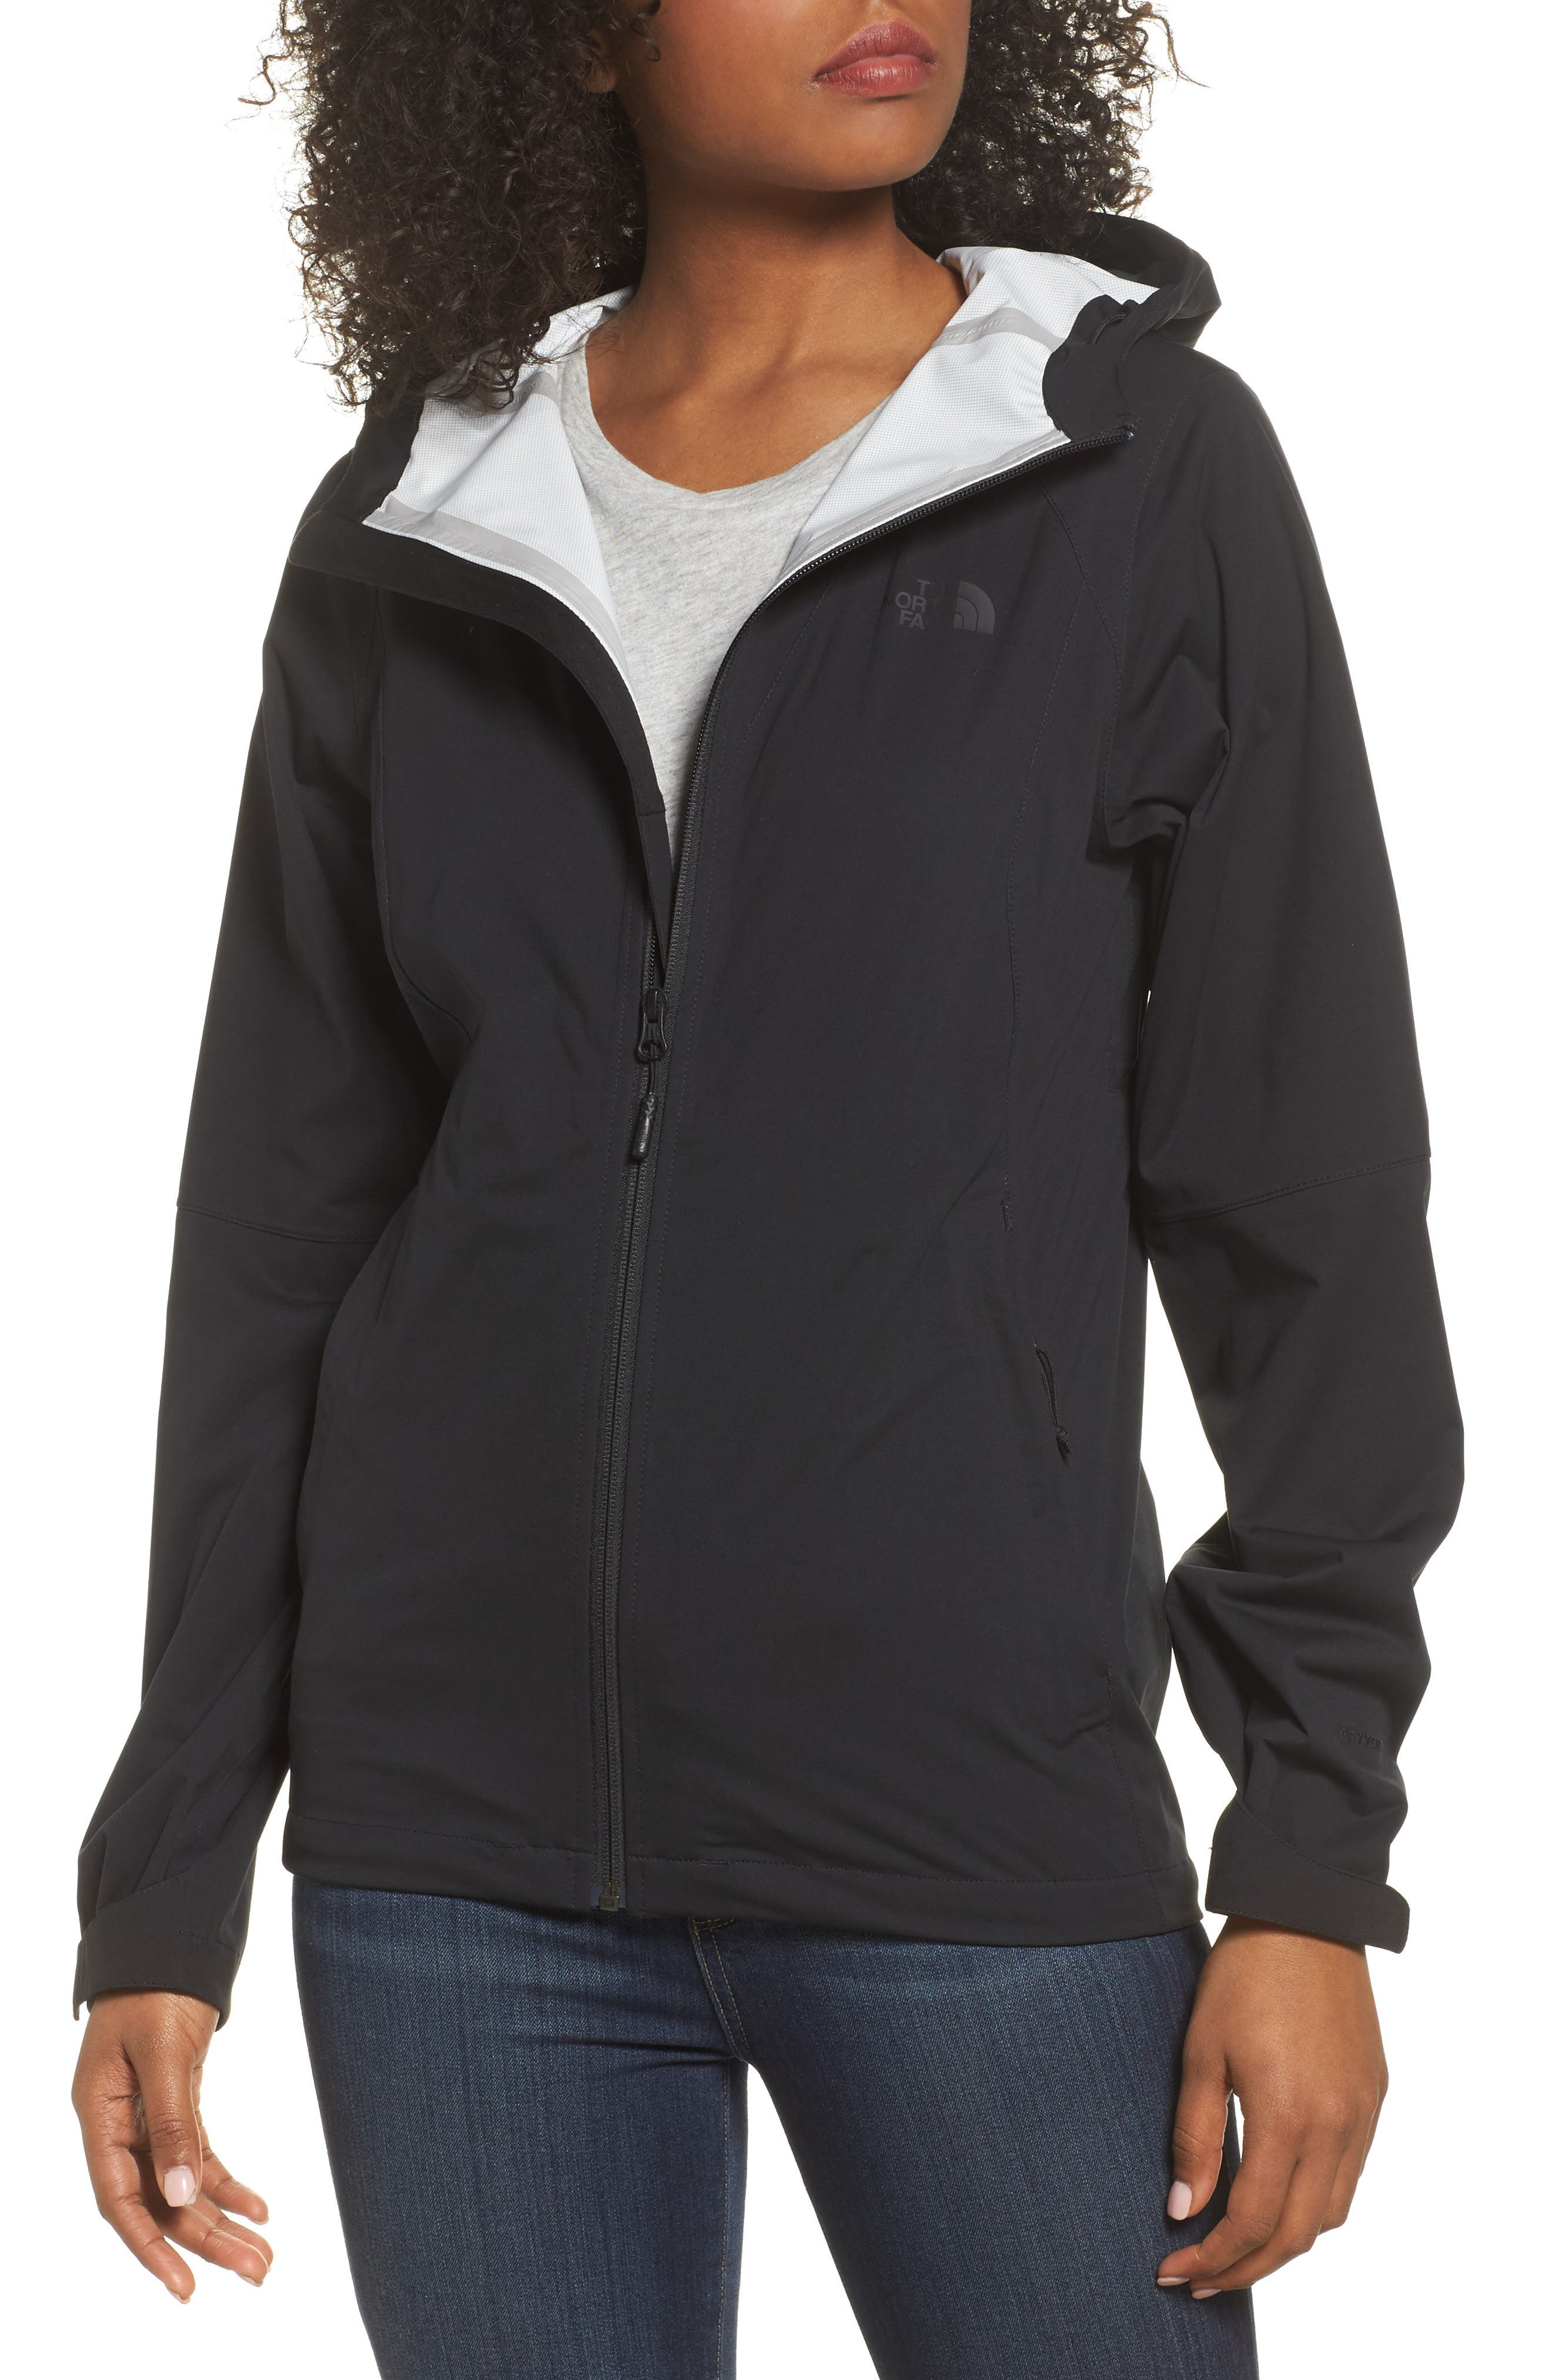 Allproof Stretch Jacket,                         Main,                         color, TNF BLACK